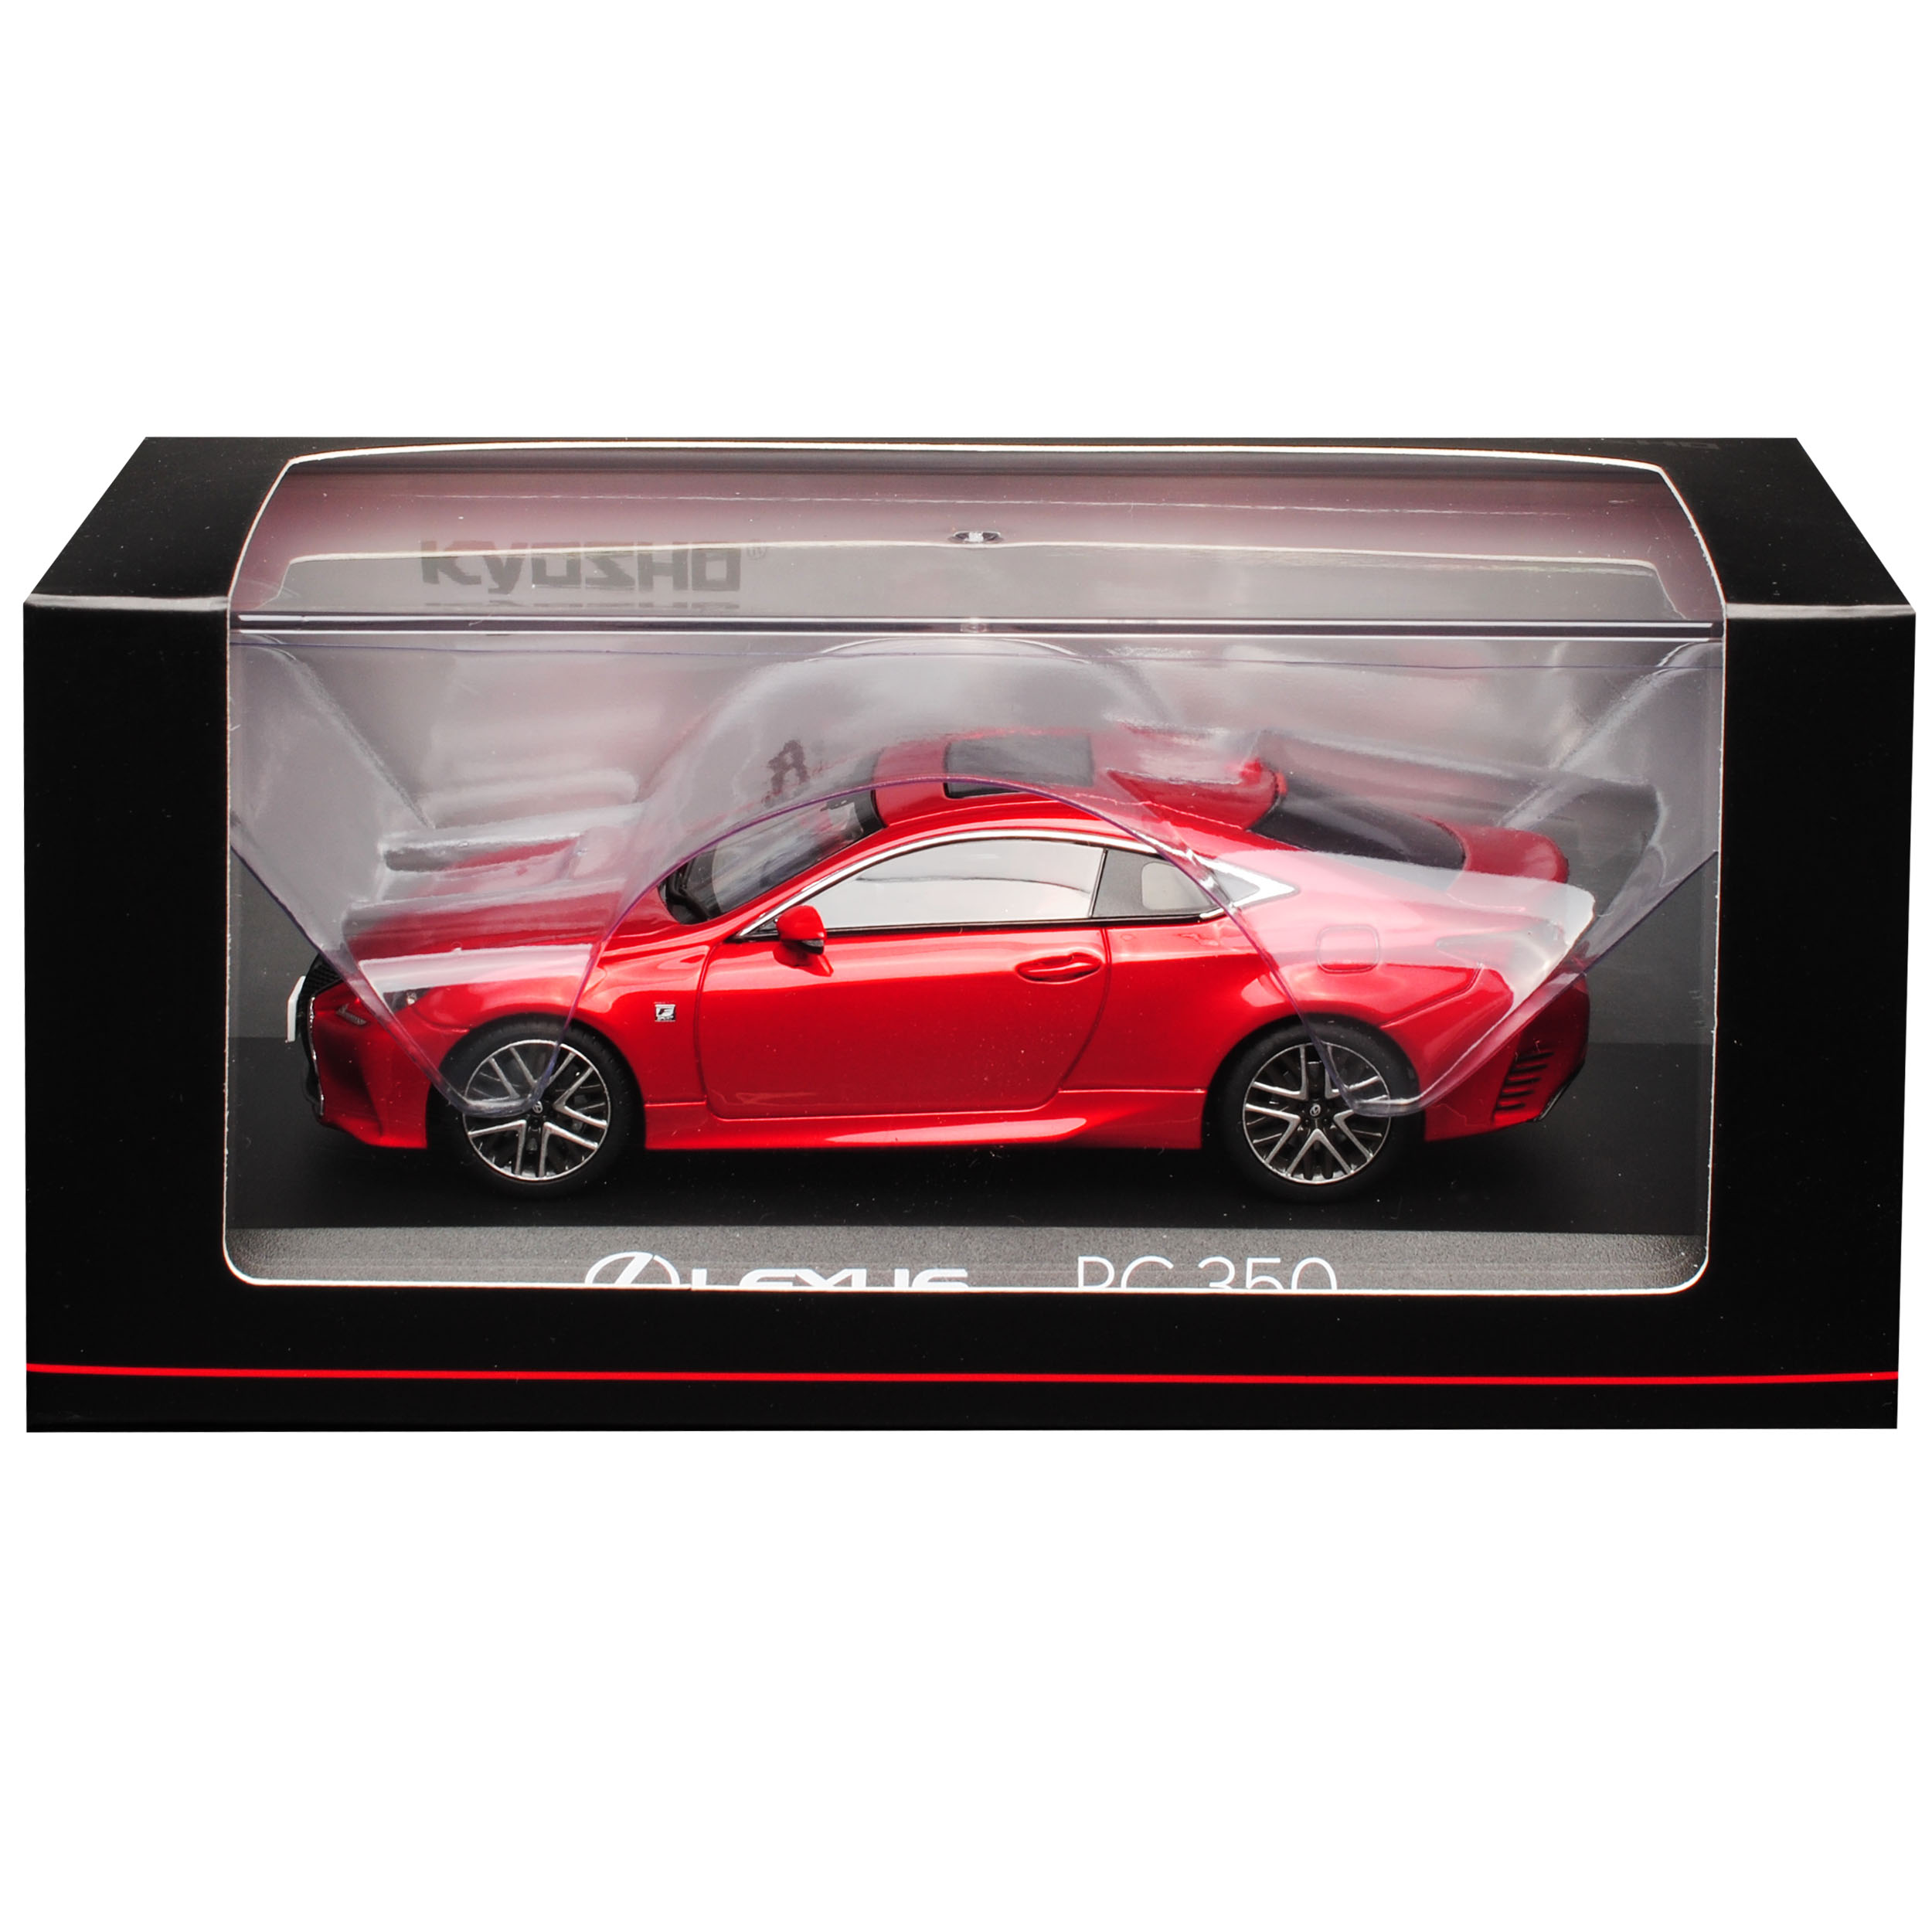 Lexus RC 350 F-Sport Coupe Coupe Coupe Radiant red CL Ab 2015 1 43 Kyosho Modell Auto mit .. 8256e9